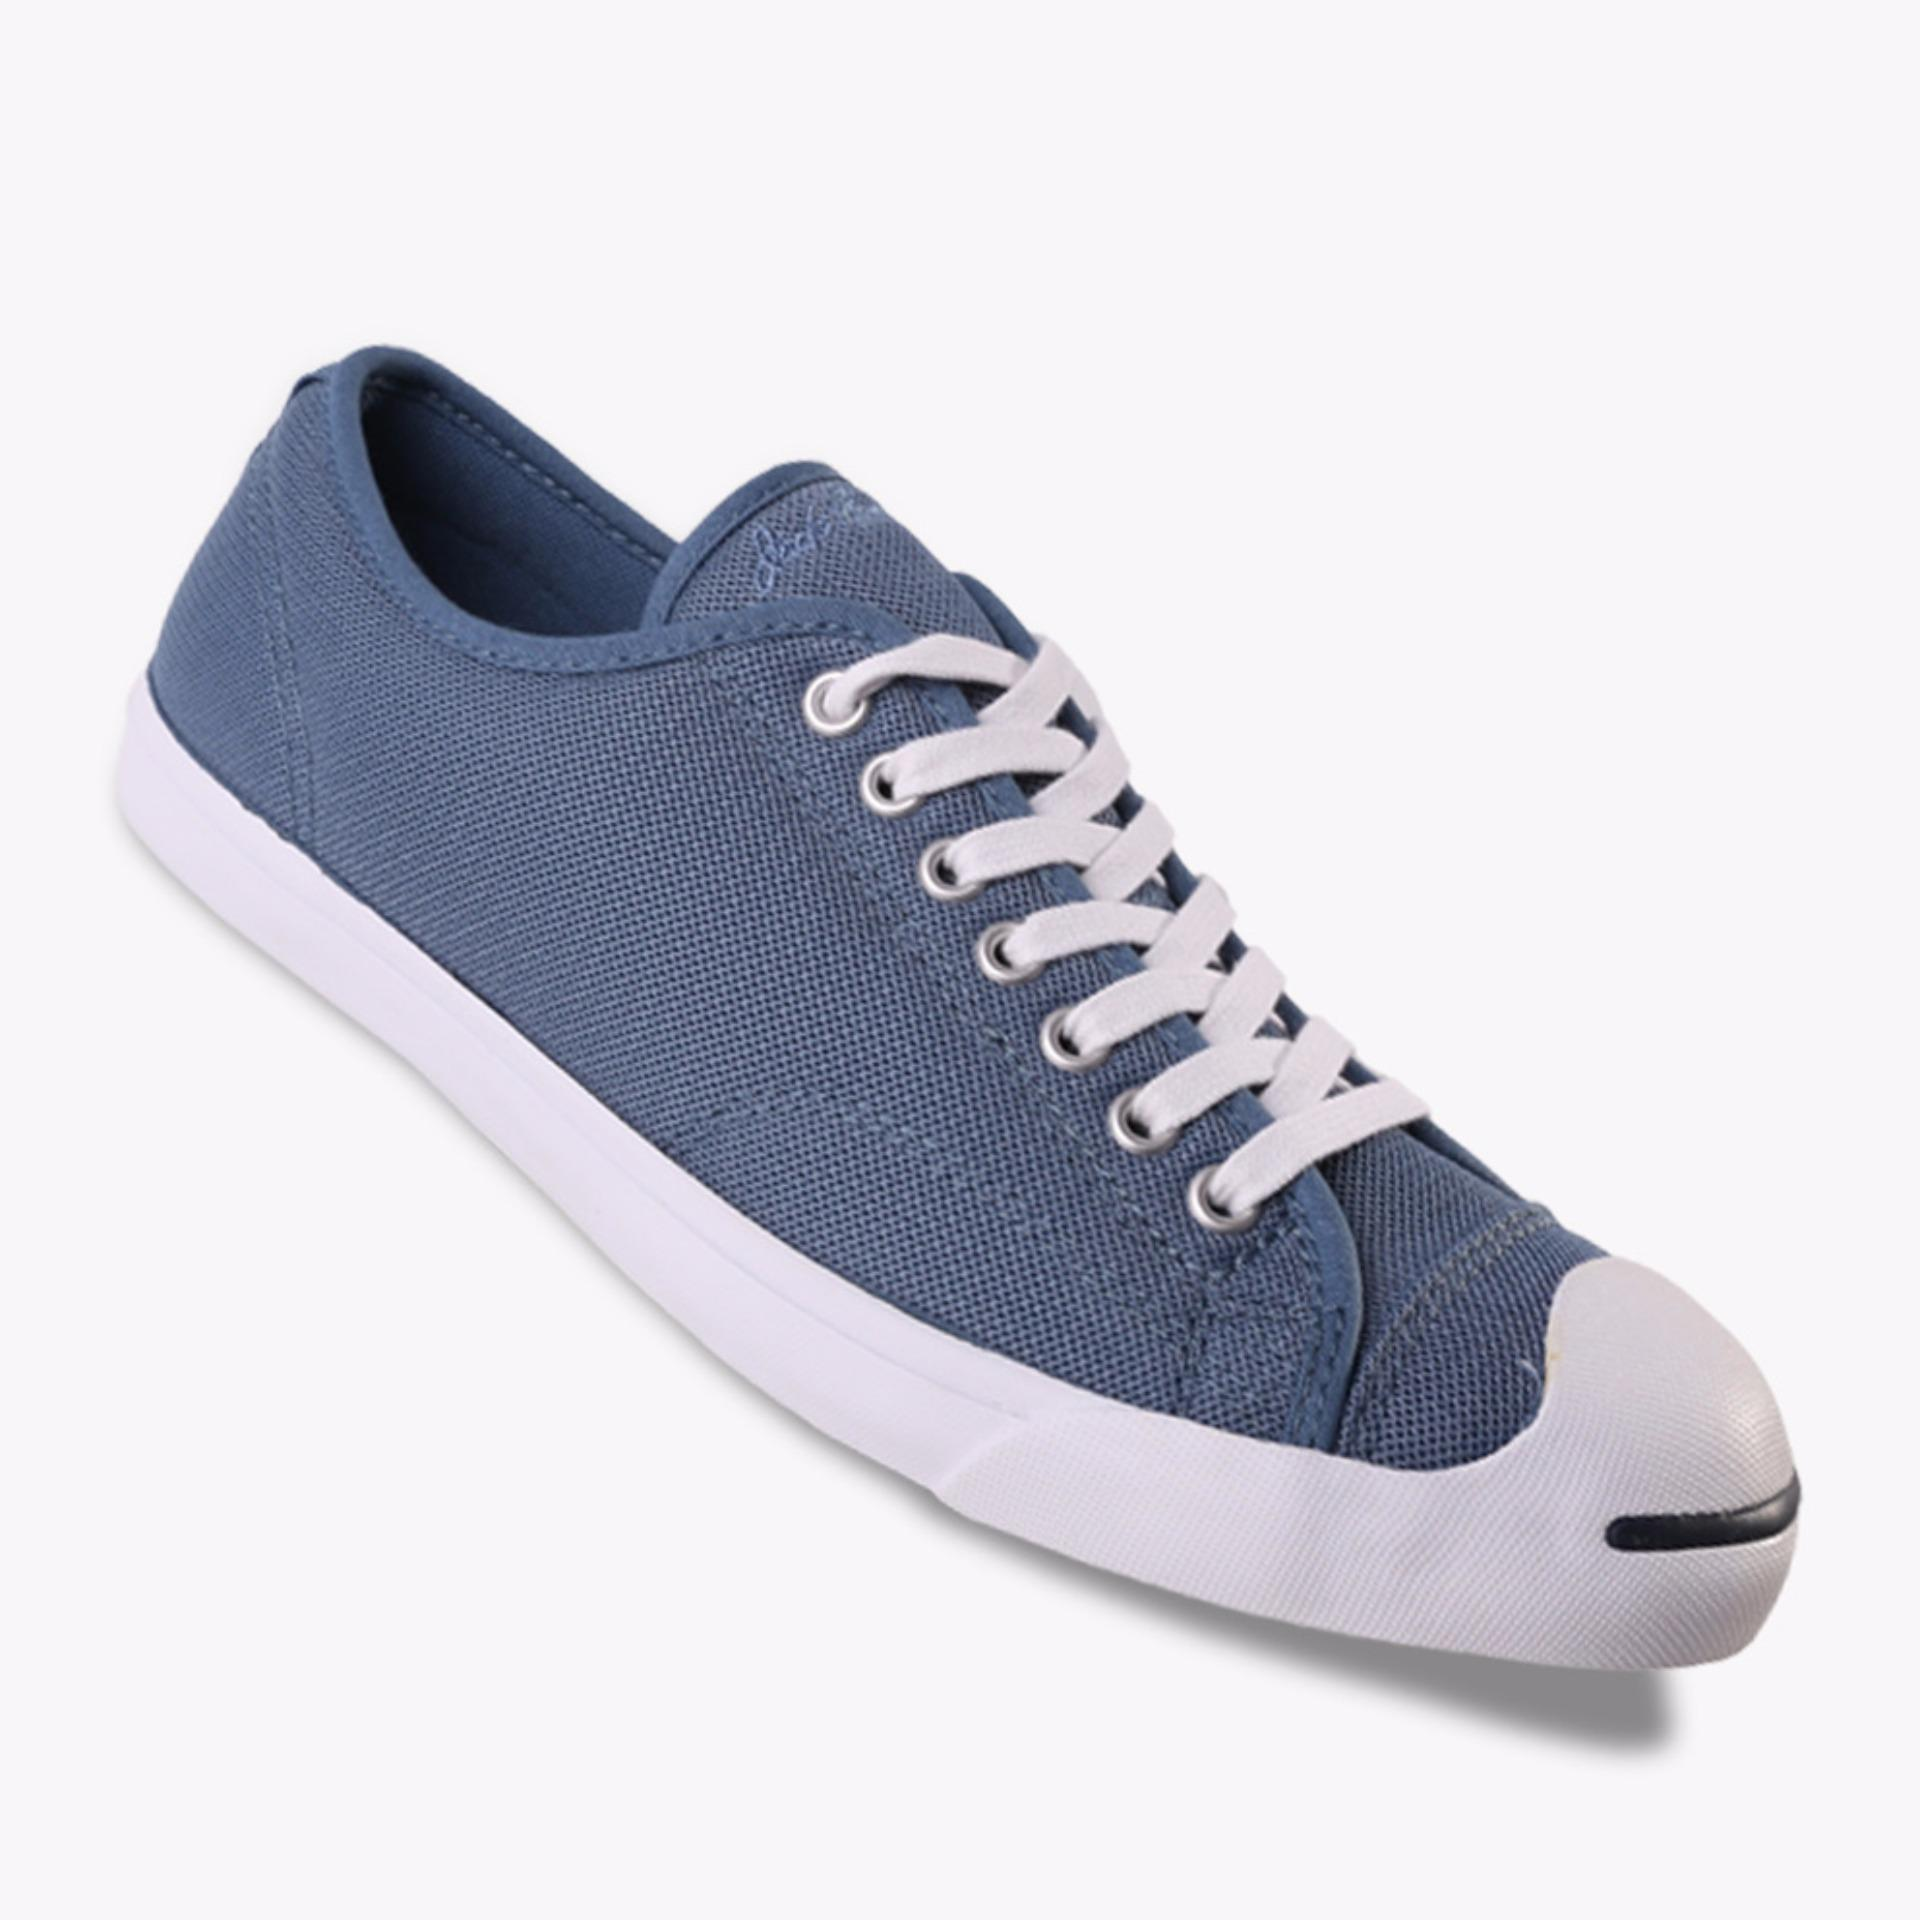 Beli Converse Jack Purcell Lp Ox Men S Sneakers Shoes Biru Yang Bagus